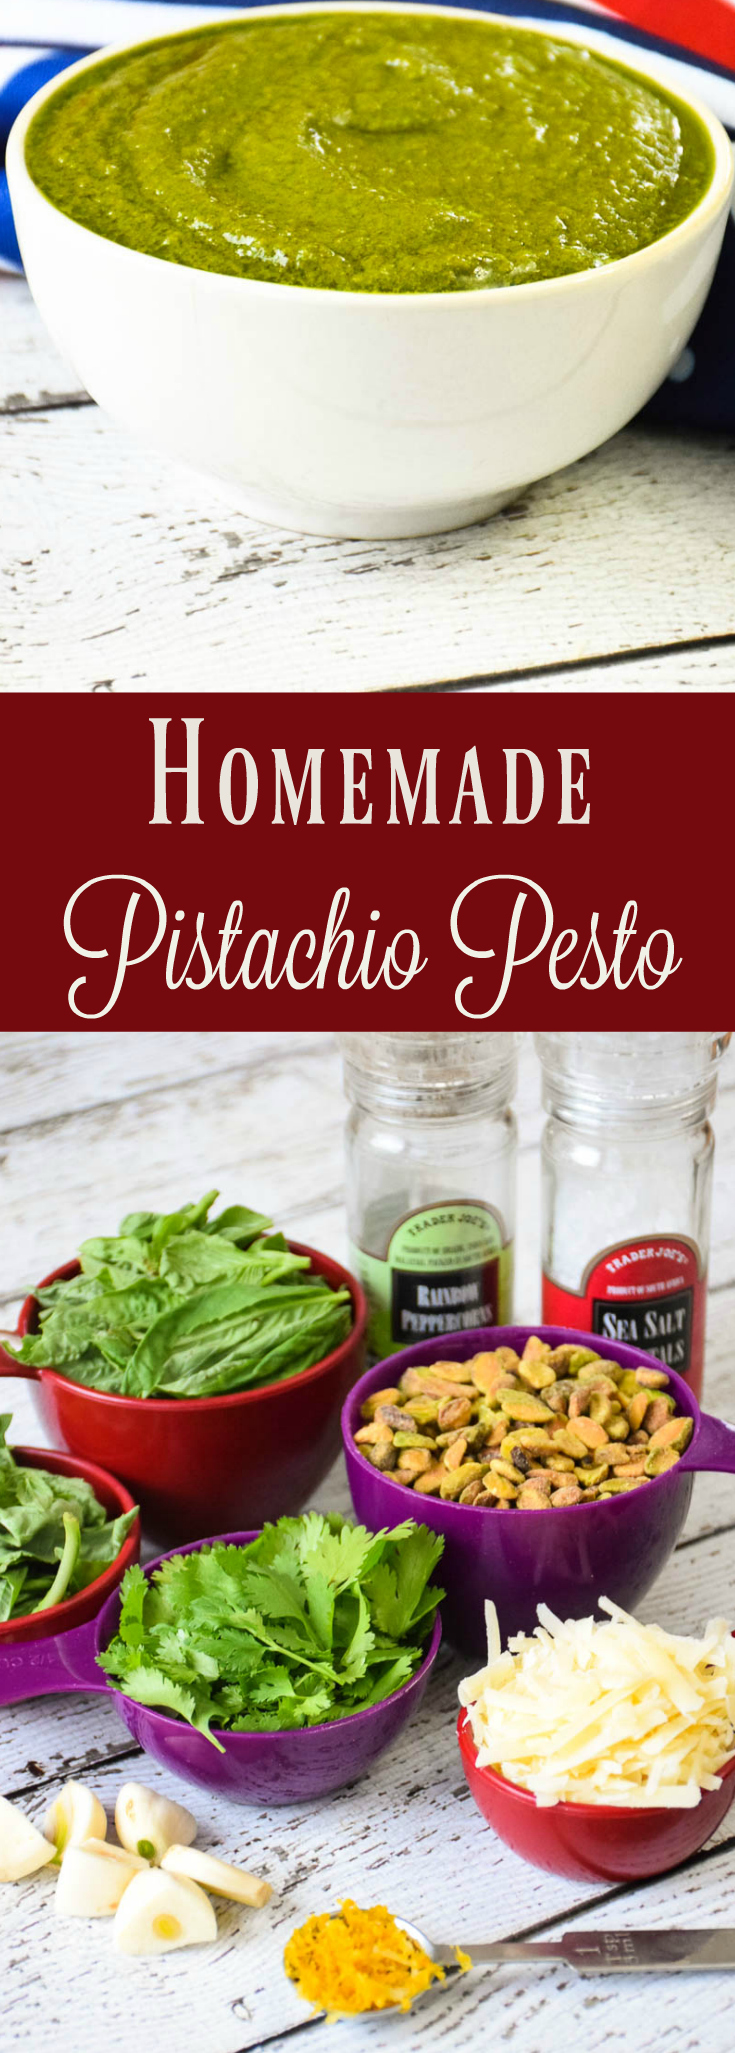 Homemade Pistachio Pesto